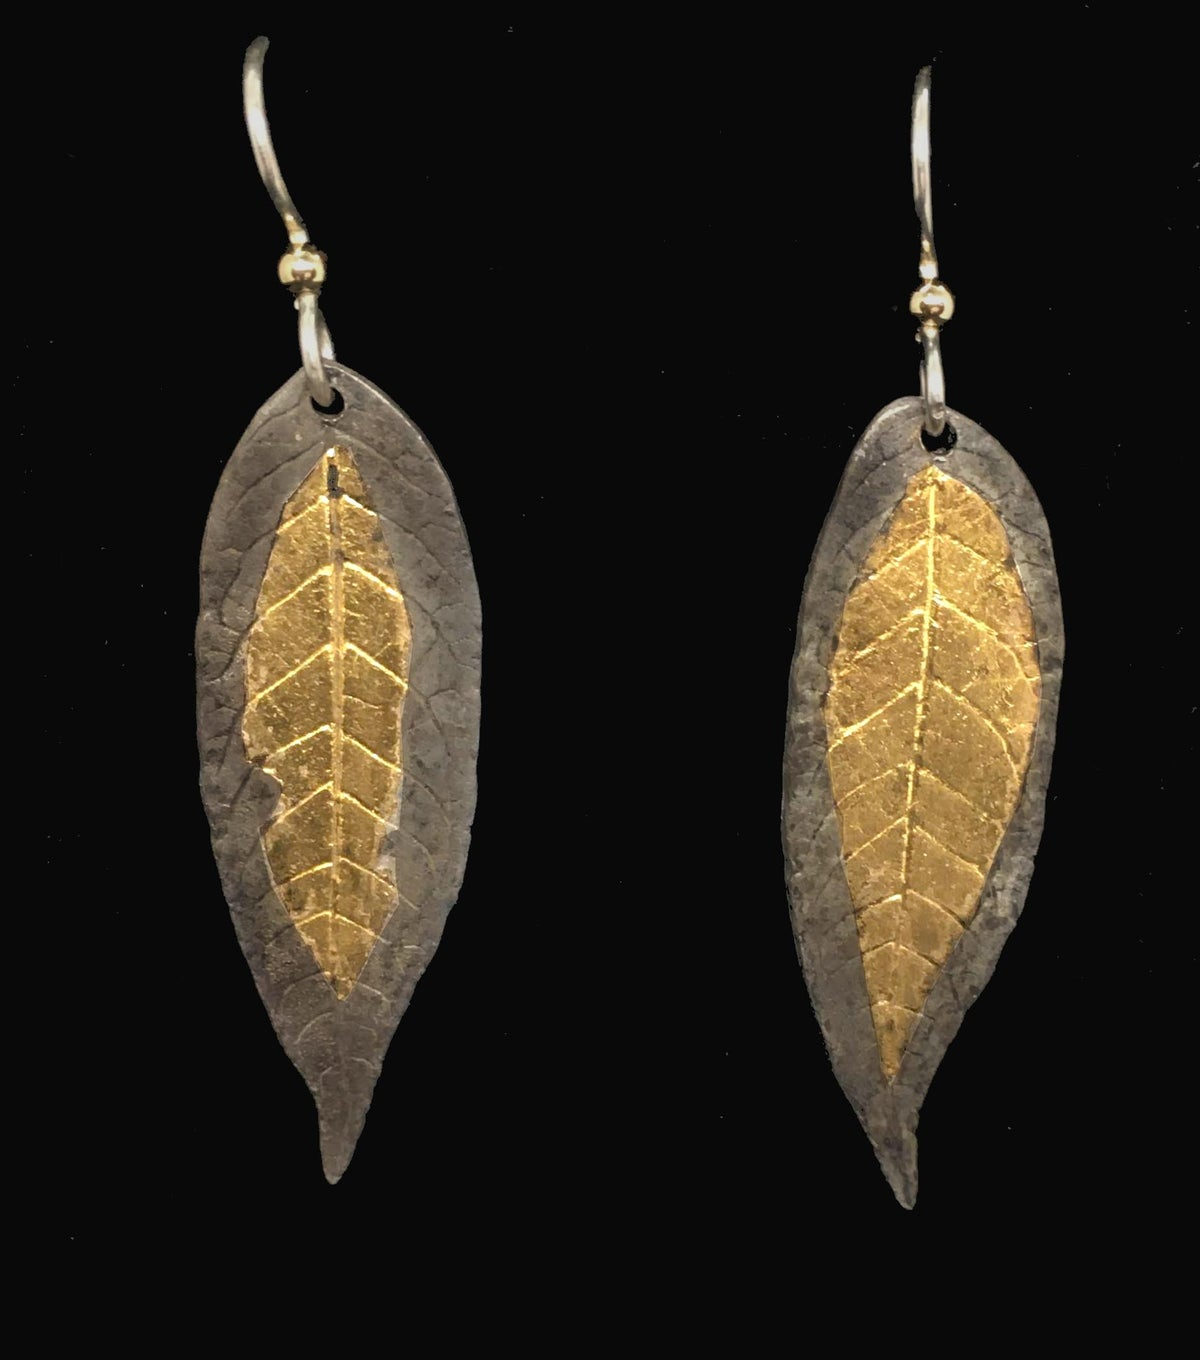 Image of Leaf Drop Earrings with 24k Gold